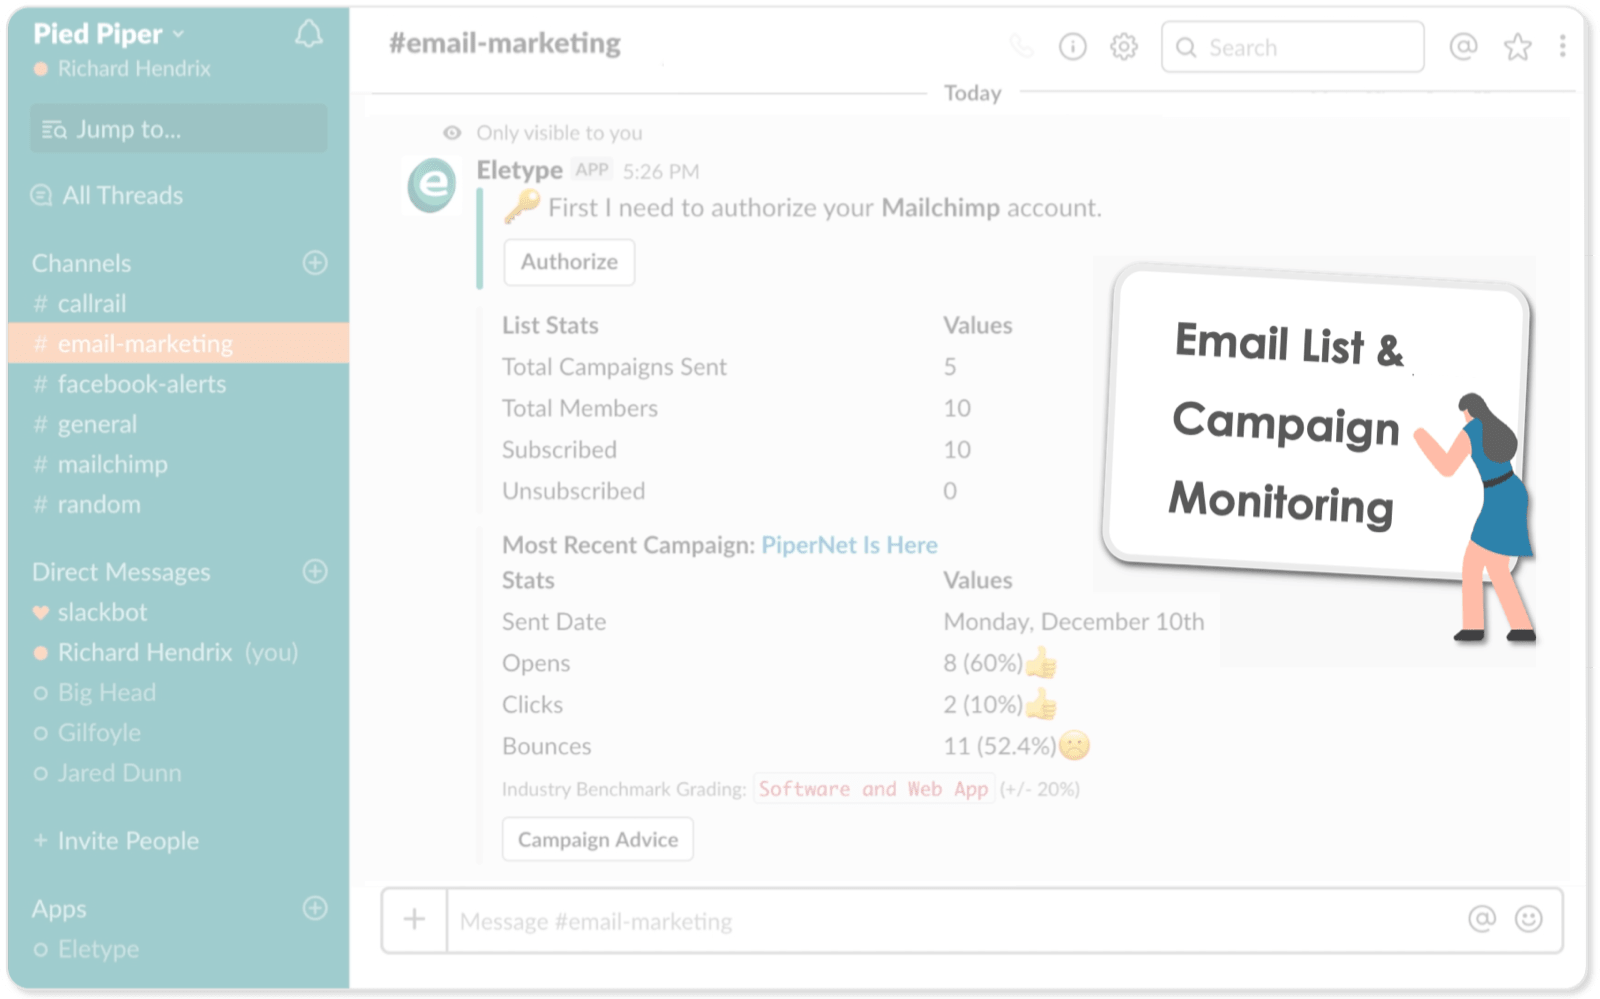 Monitor your Mailchimp campaign in Slack